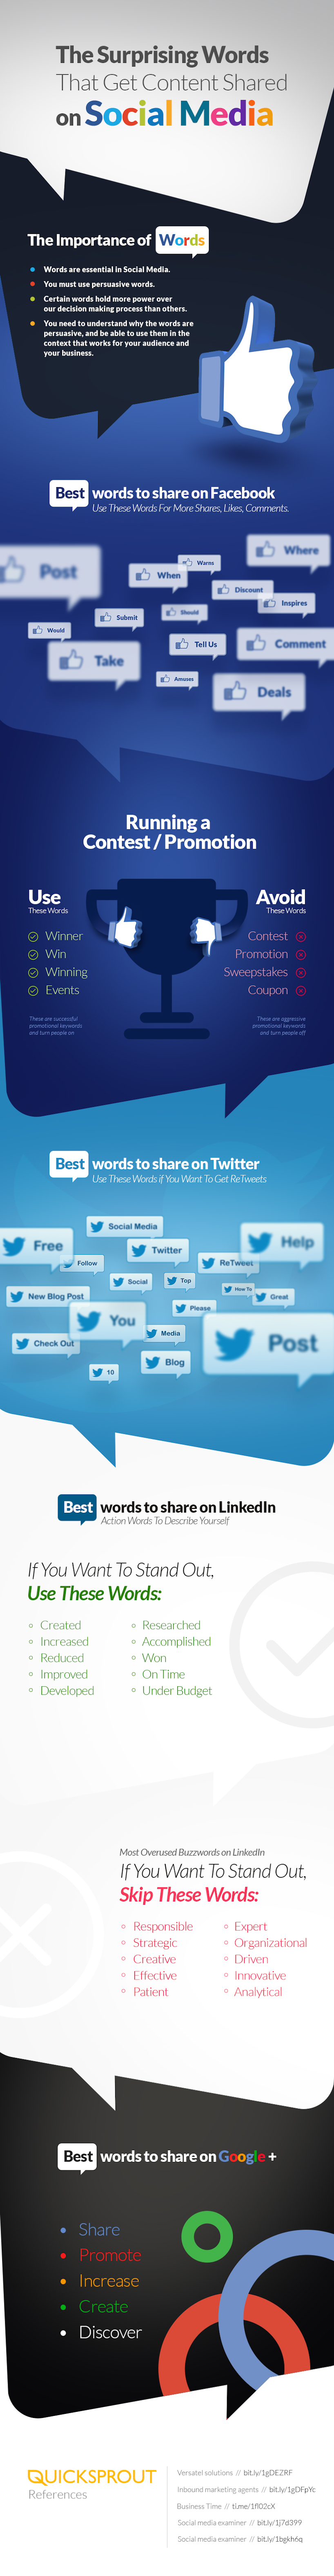 wordsonsocialmedia